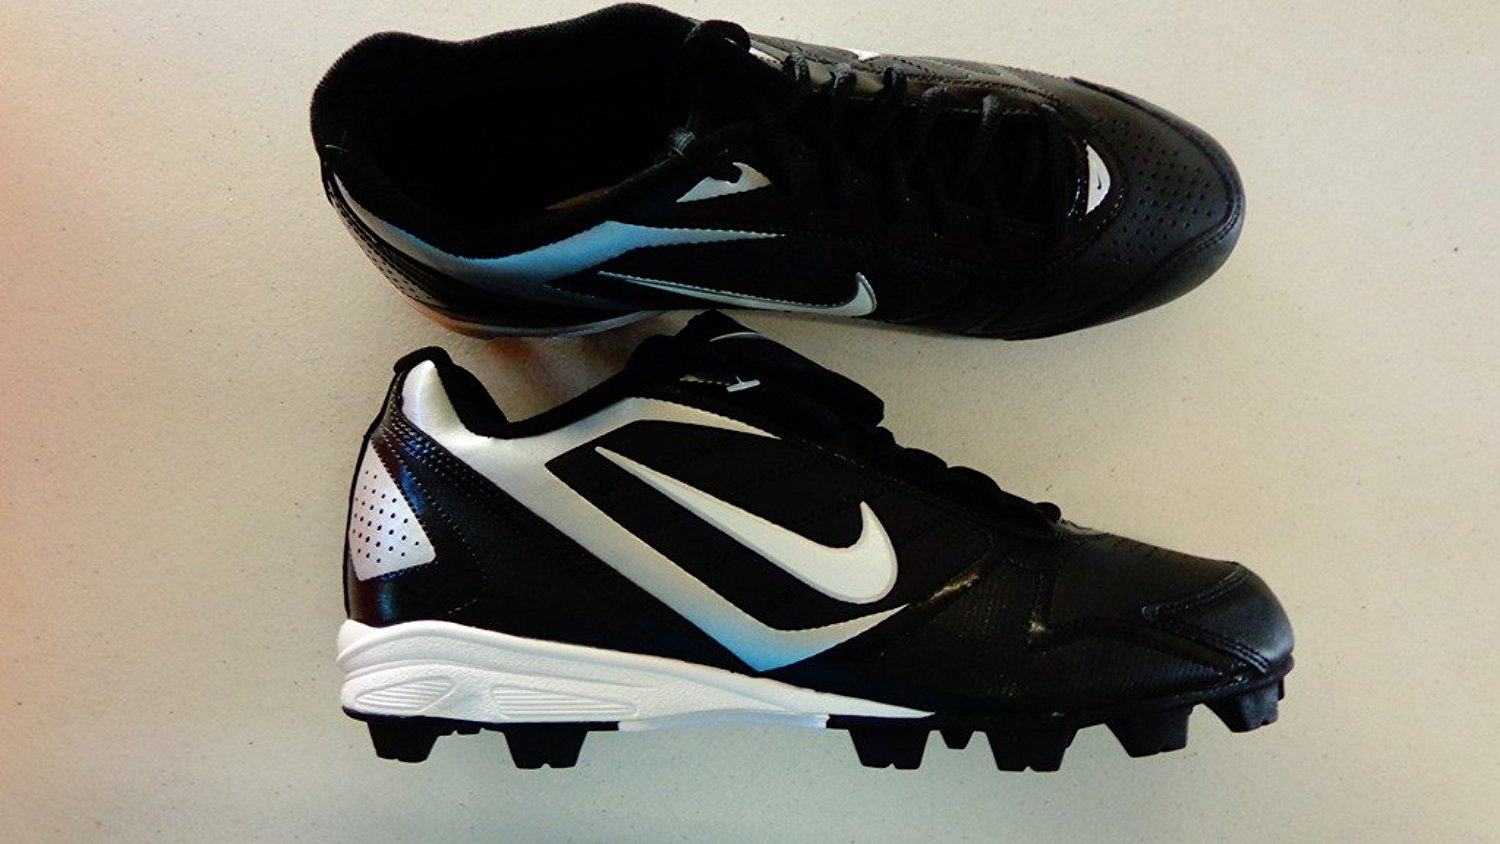 huge selection of c2659 d5f1a Get Quotations · New Nike Keystone Low 375560 Size Mens 10.5 Baseball  Cleats Black White